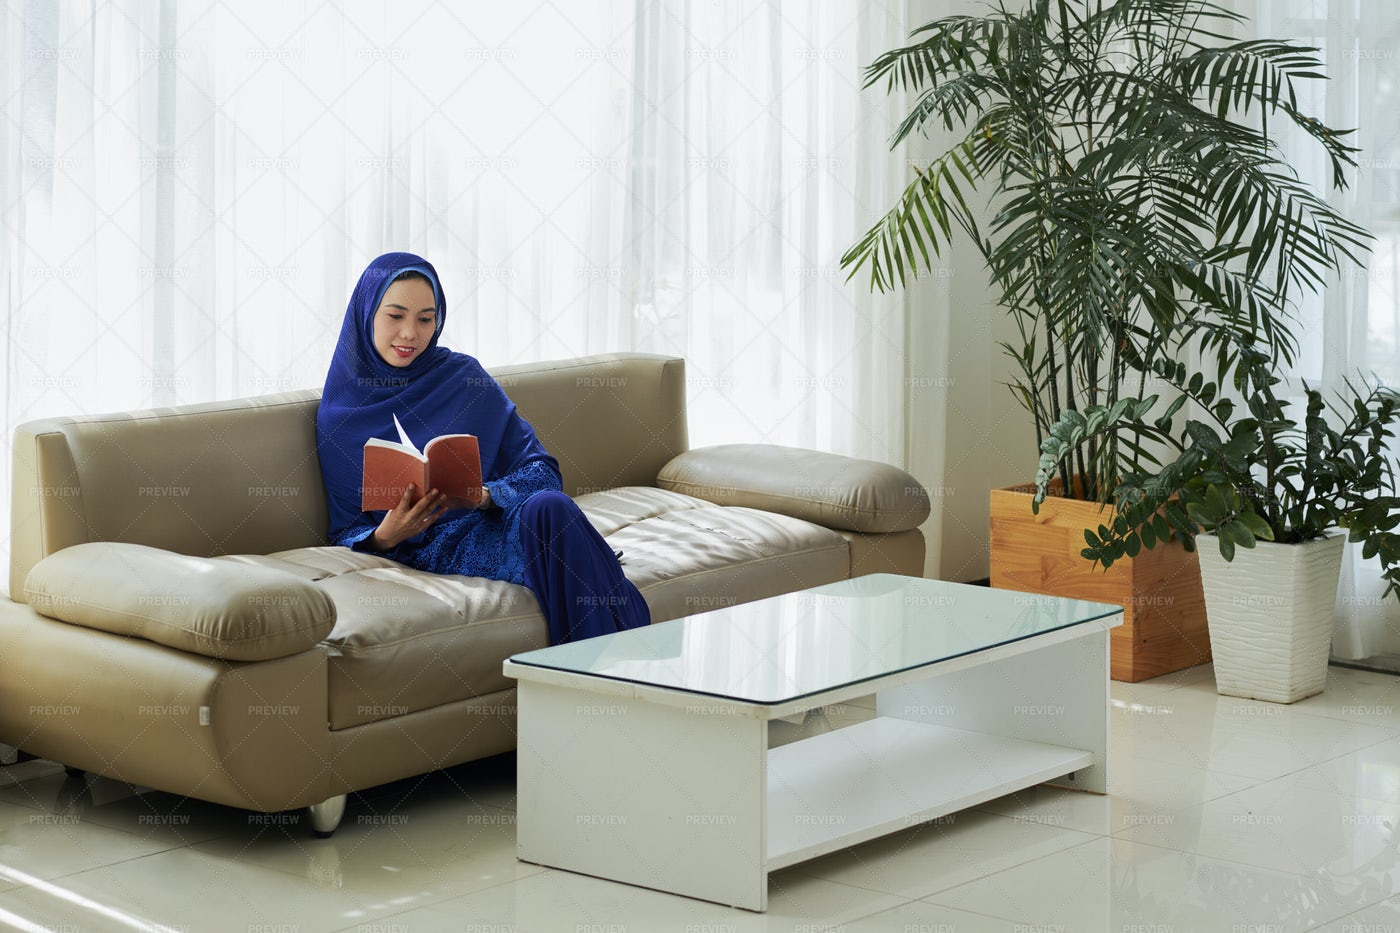 Muslim Woman Resting At Home: Stock Photos